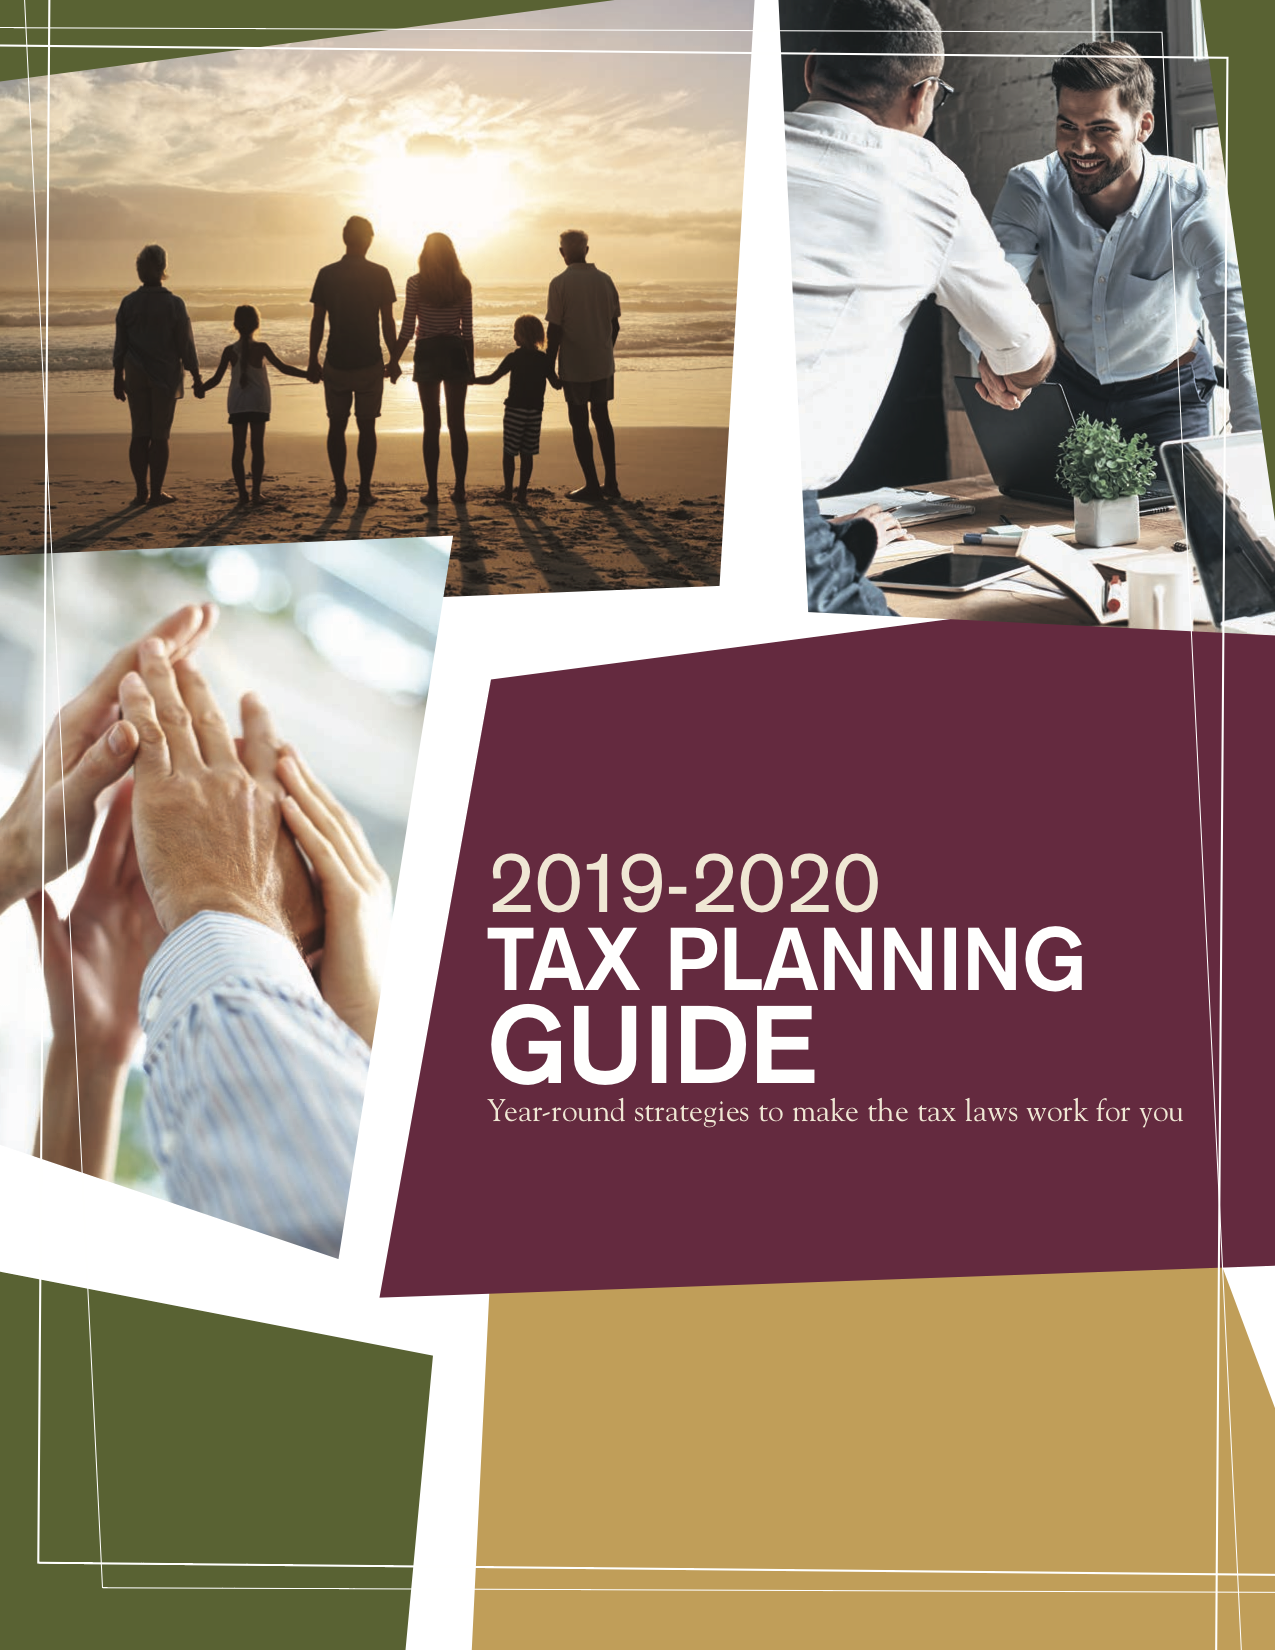 2019-2020 Tax Planning Guide cover image.png